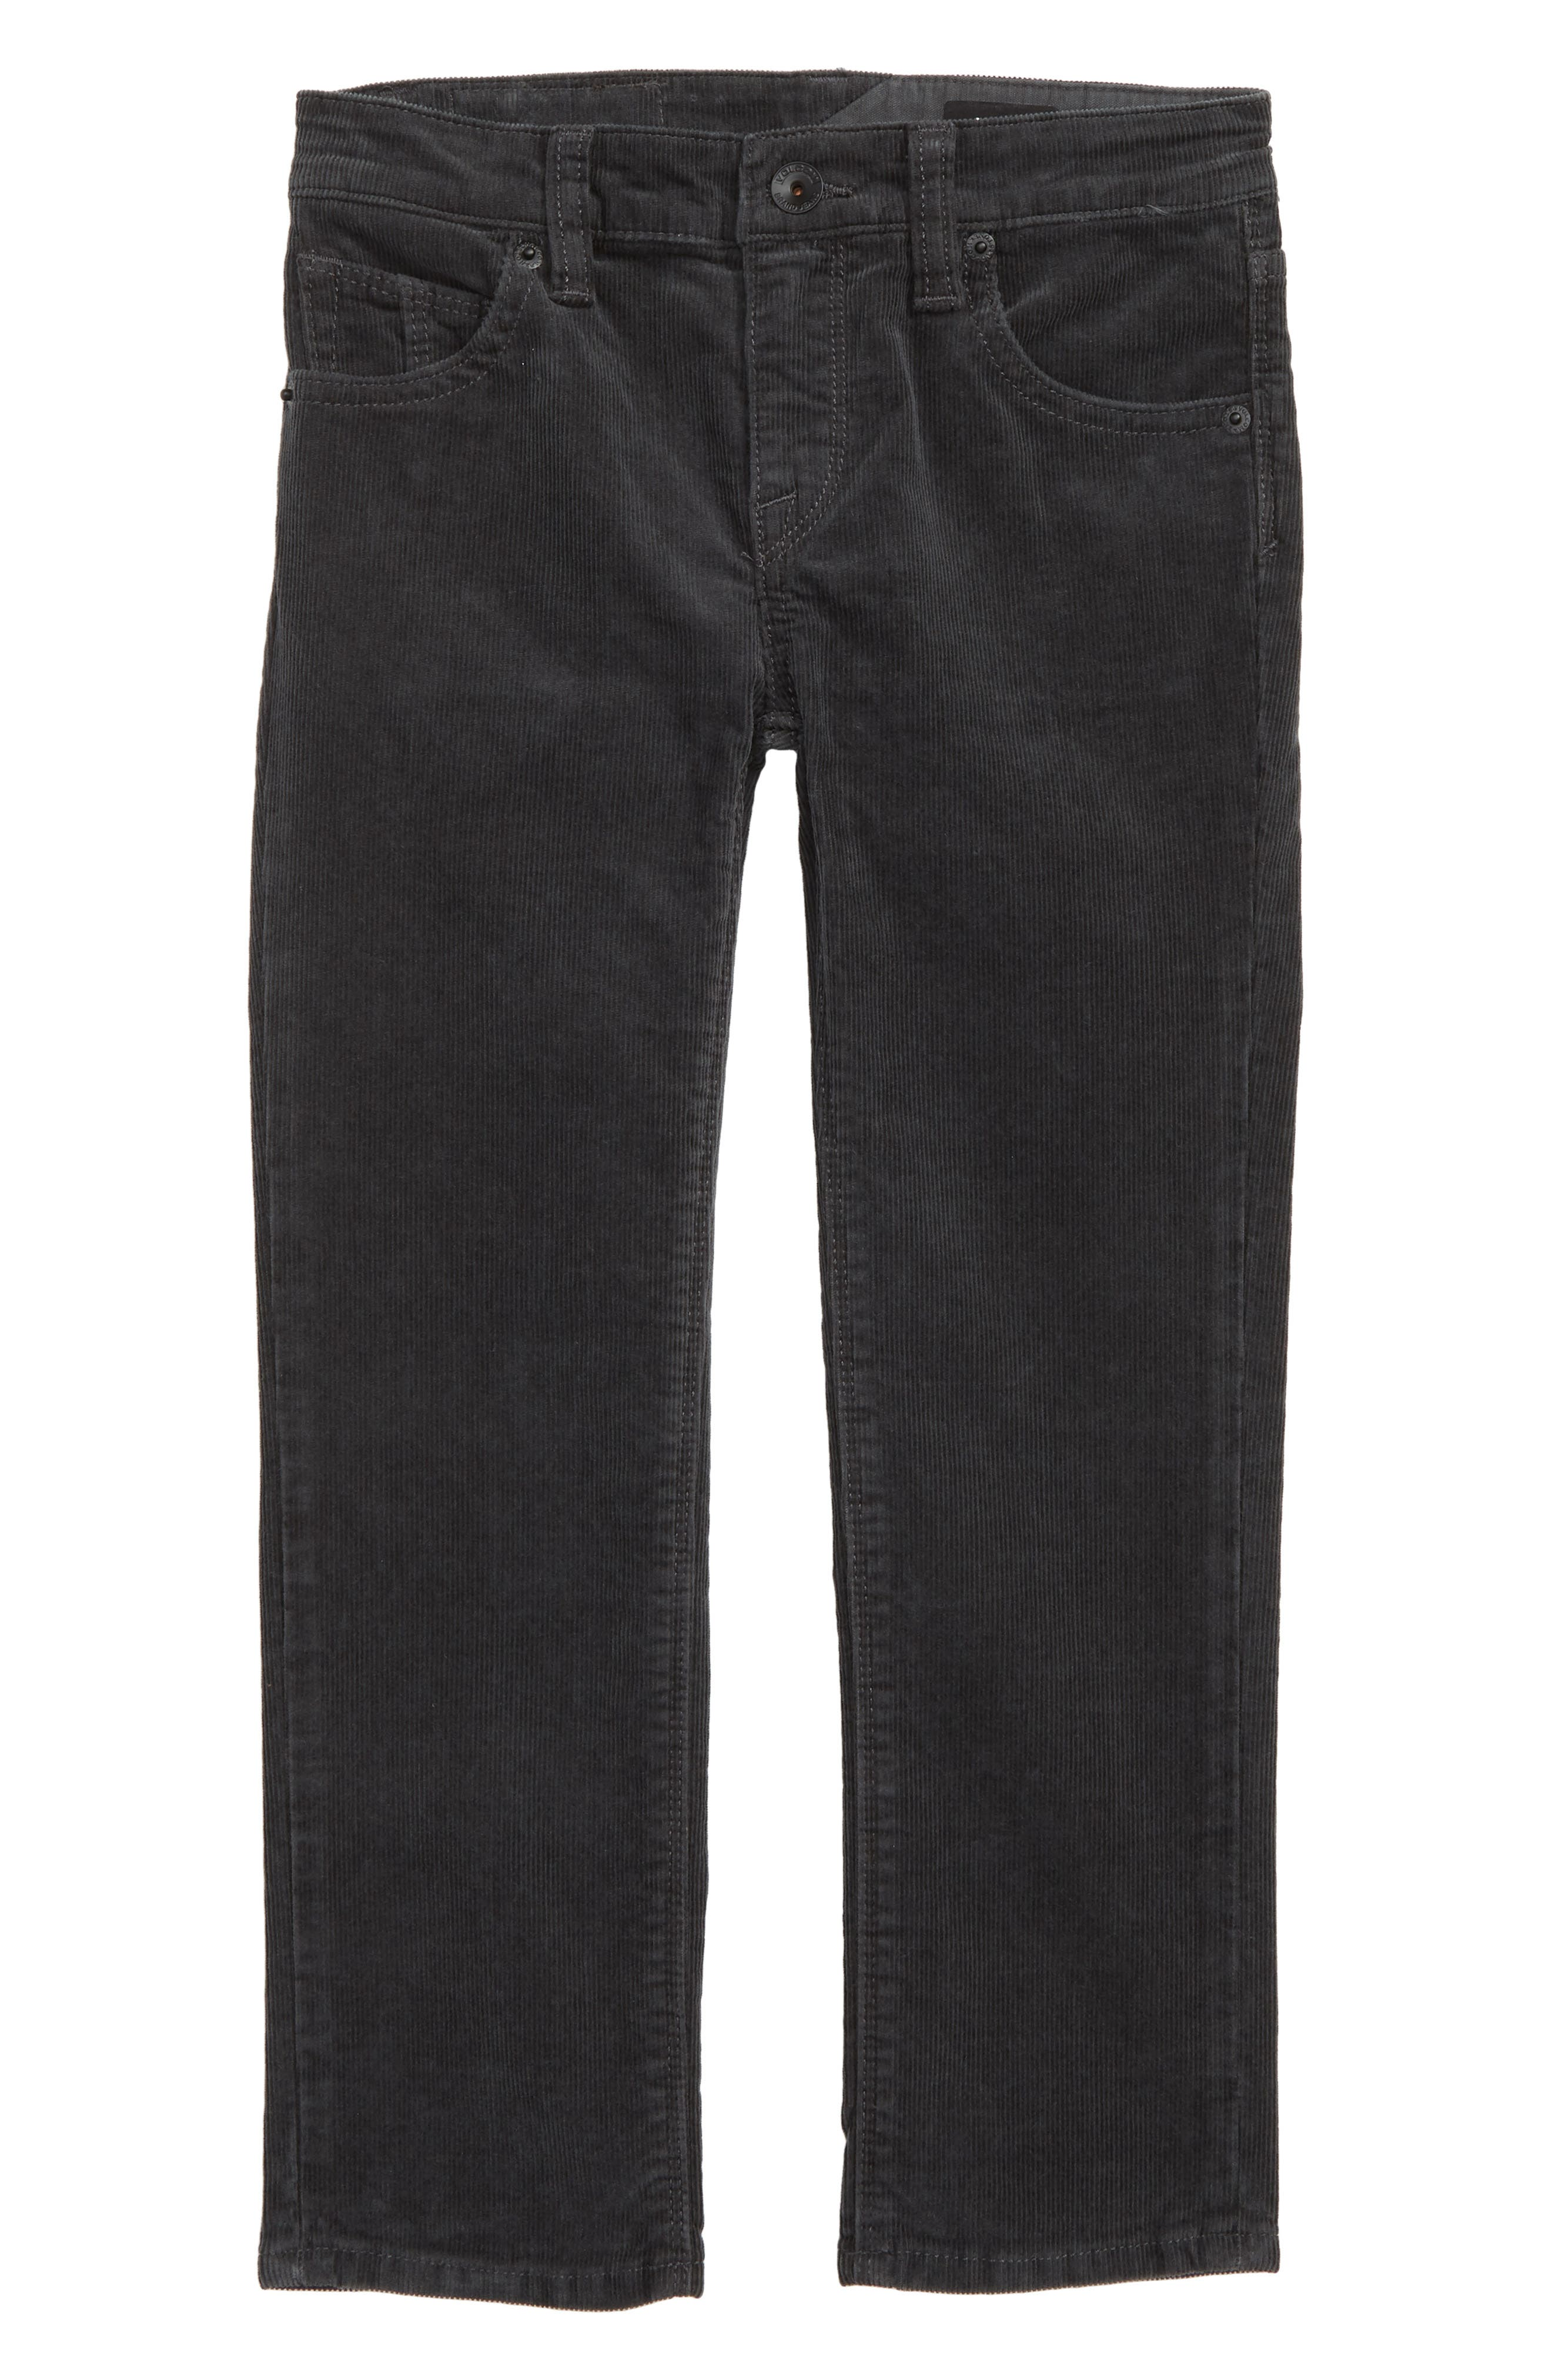 Vorta Slim Fit Corduroy Jeans,                             Main thumbnail 1, color,                             STEALTH